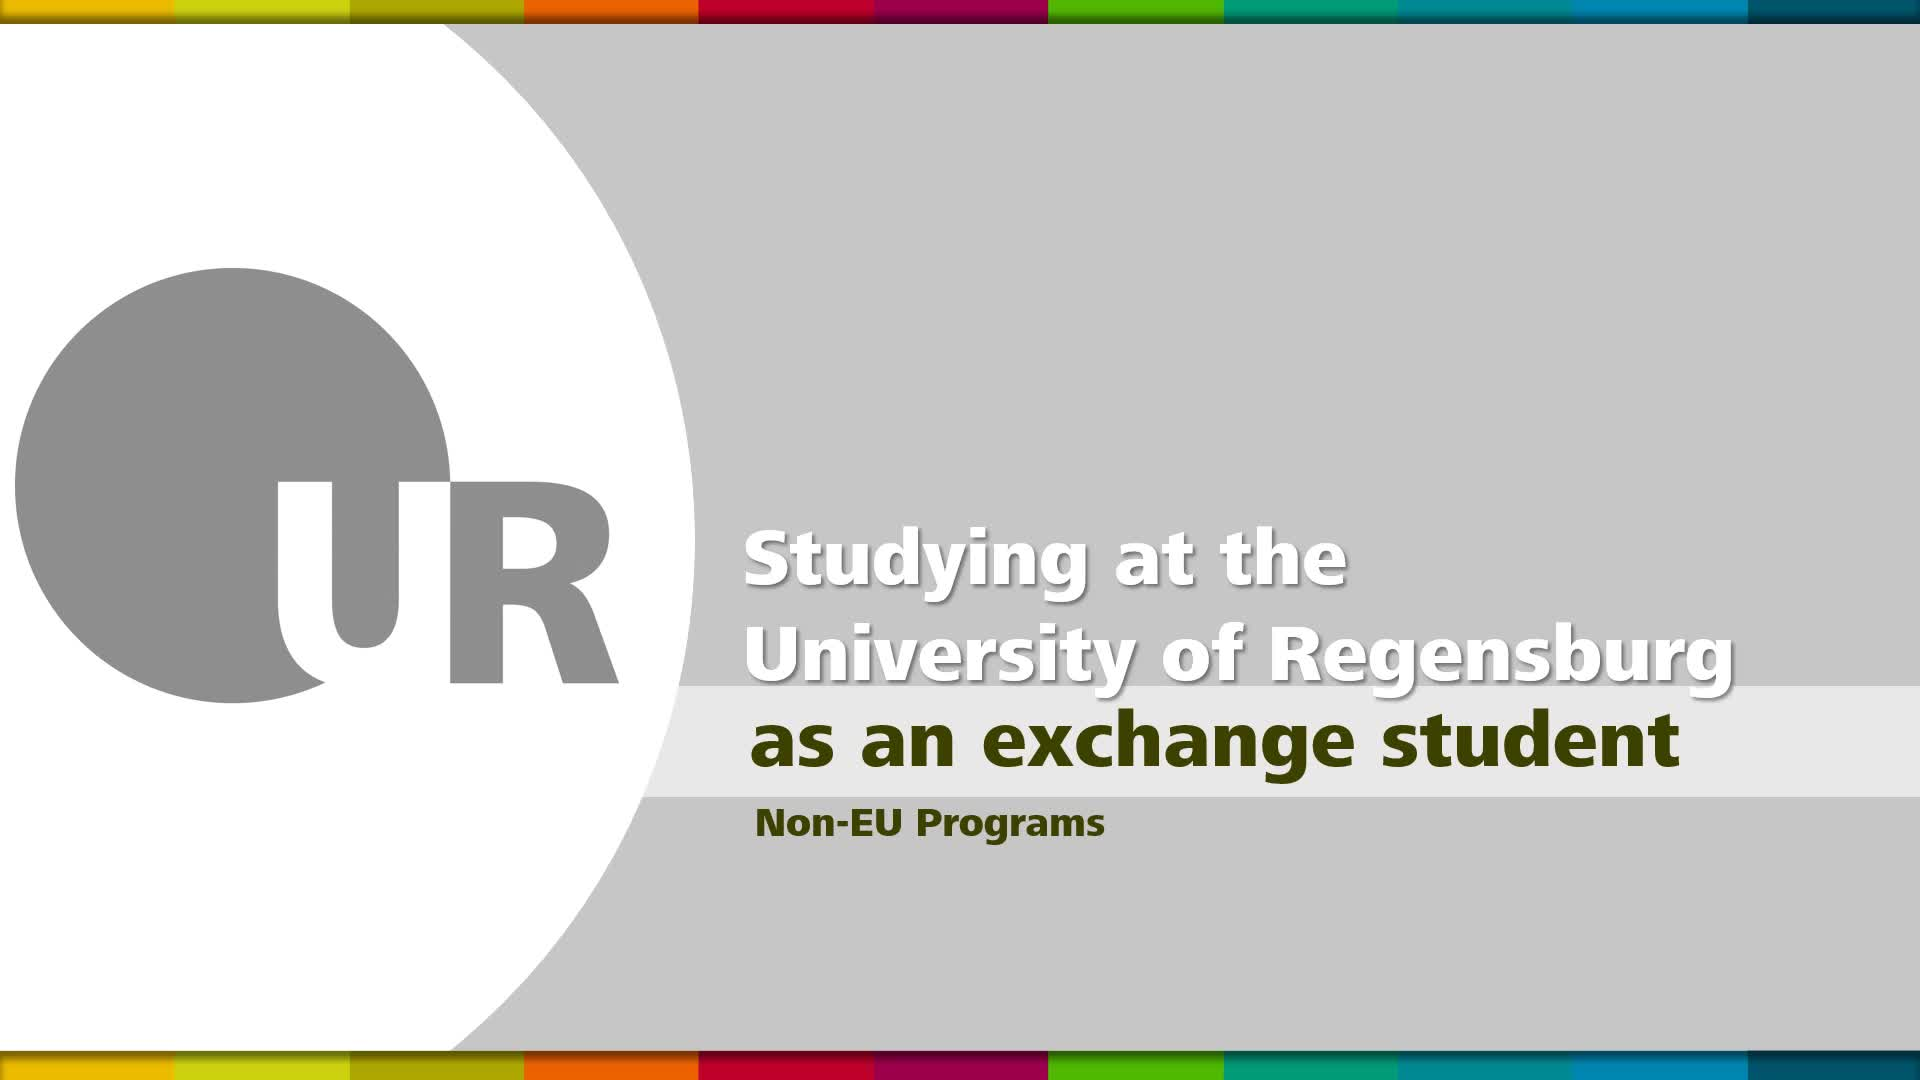 Studying at the University of Regensburg:        Non-EU Exchange Student